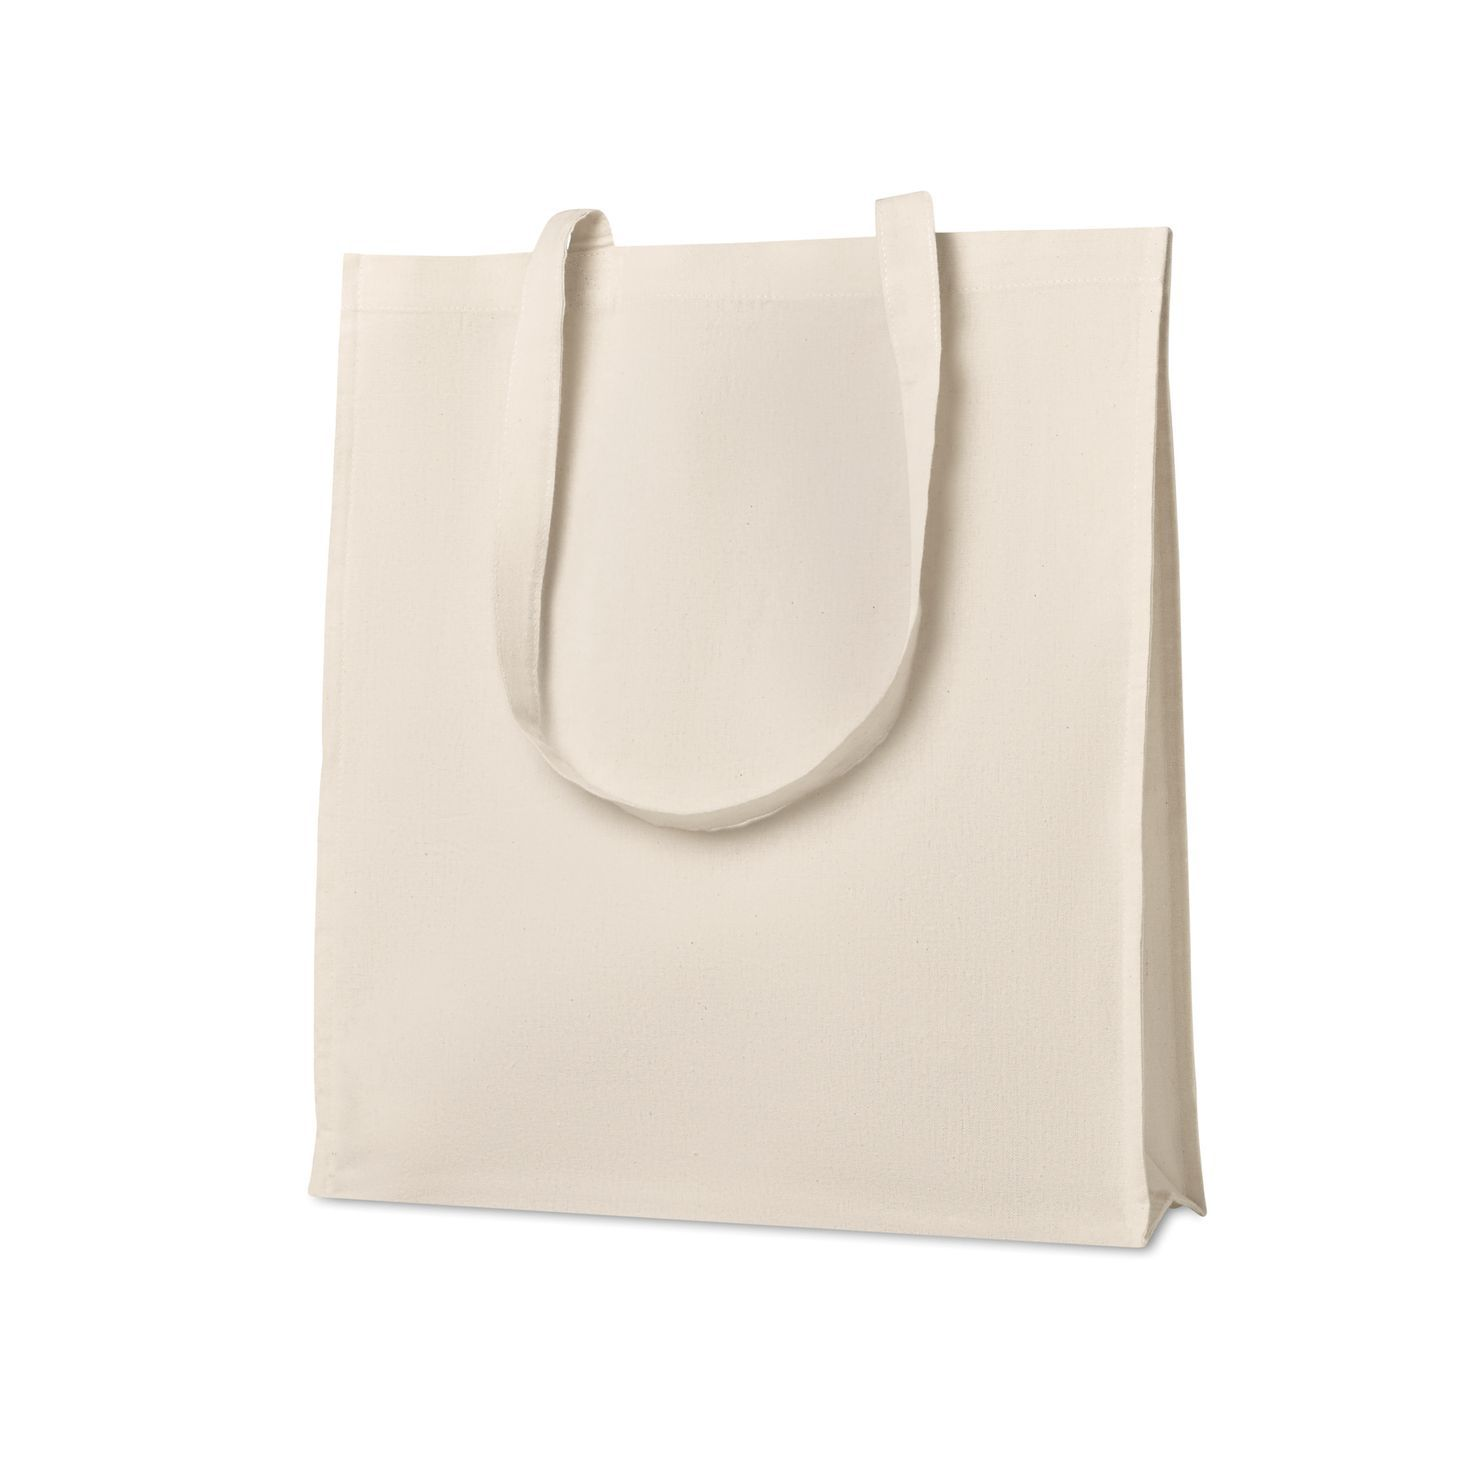 Ecru Katoenen shopper | Twill | 160 grams